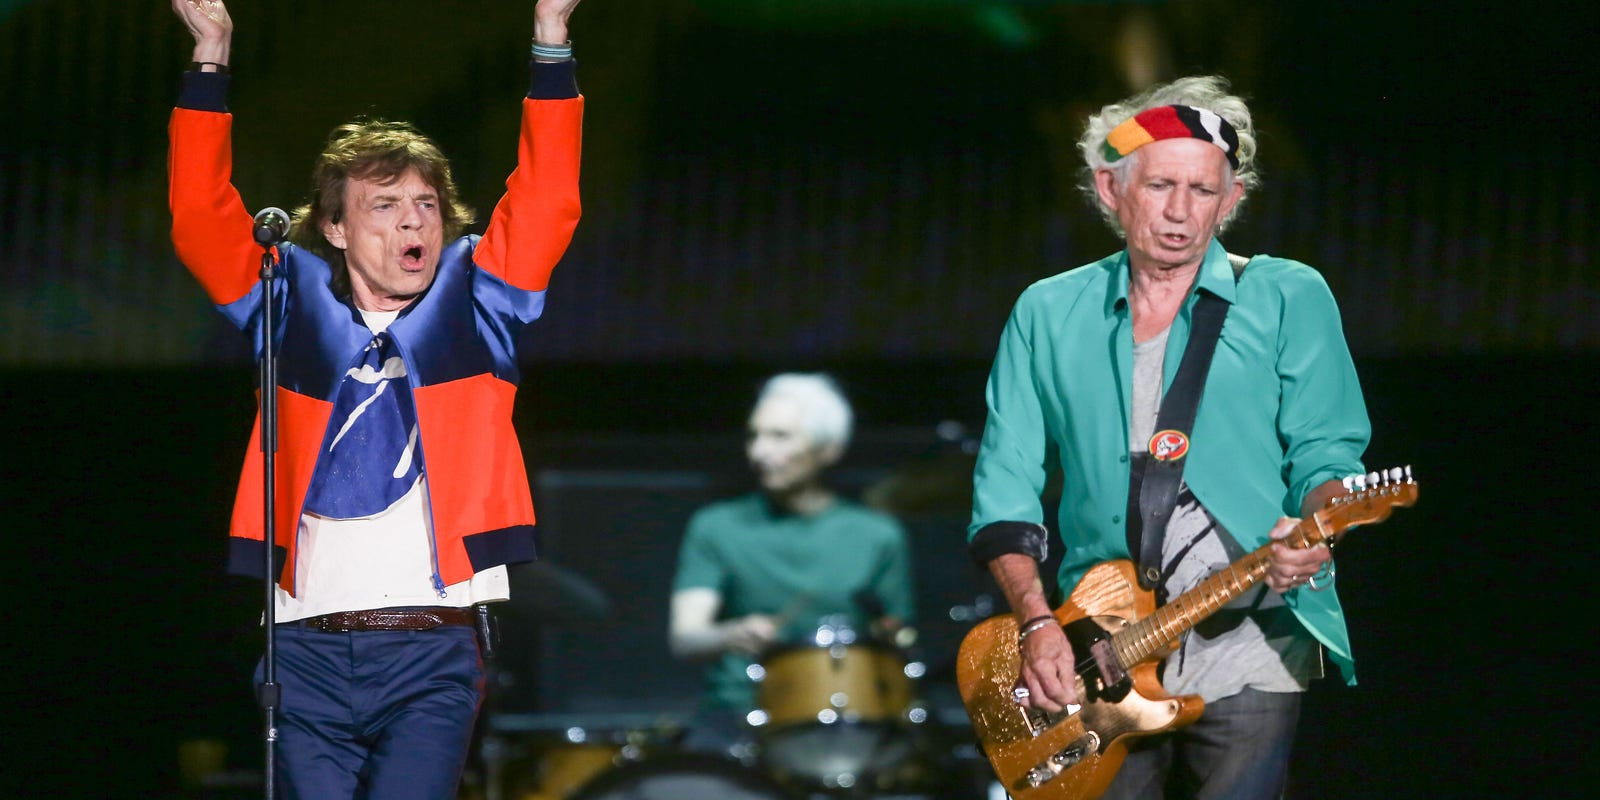 Desert Trip was unmatched, and maybe impossible to repeat for rock fans